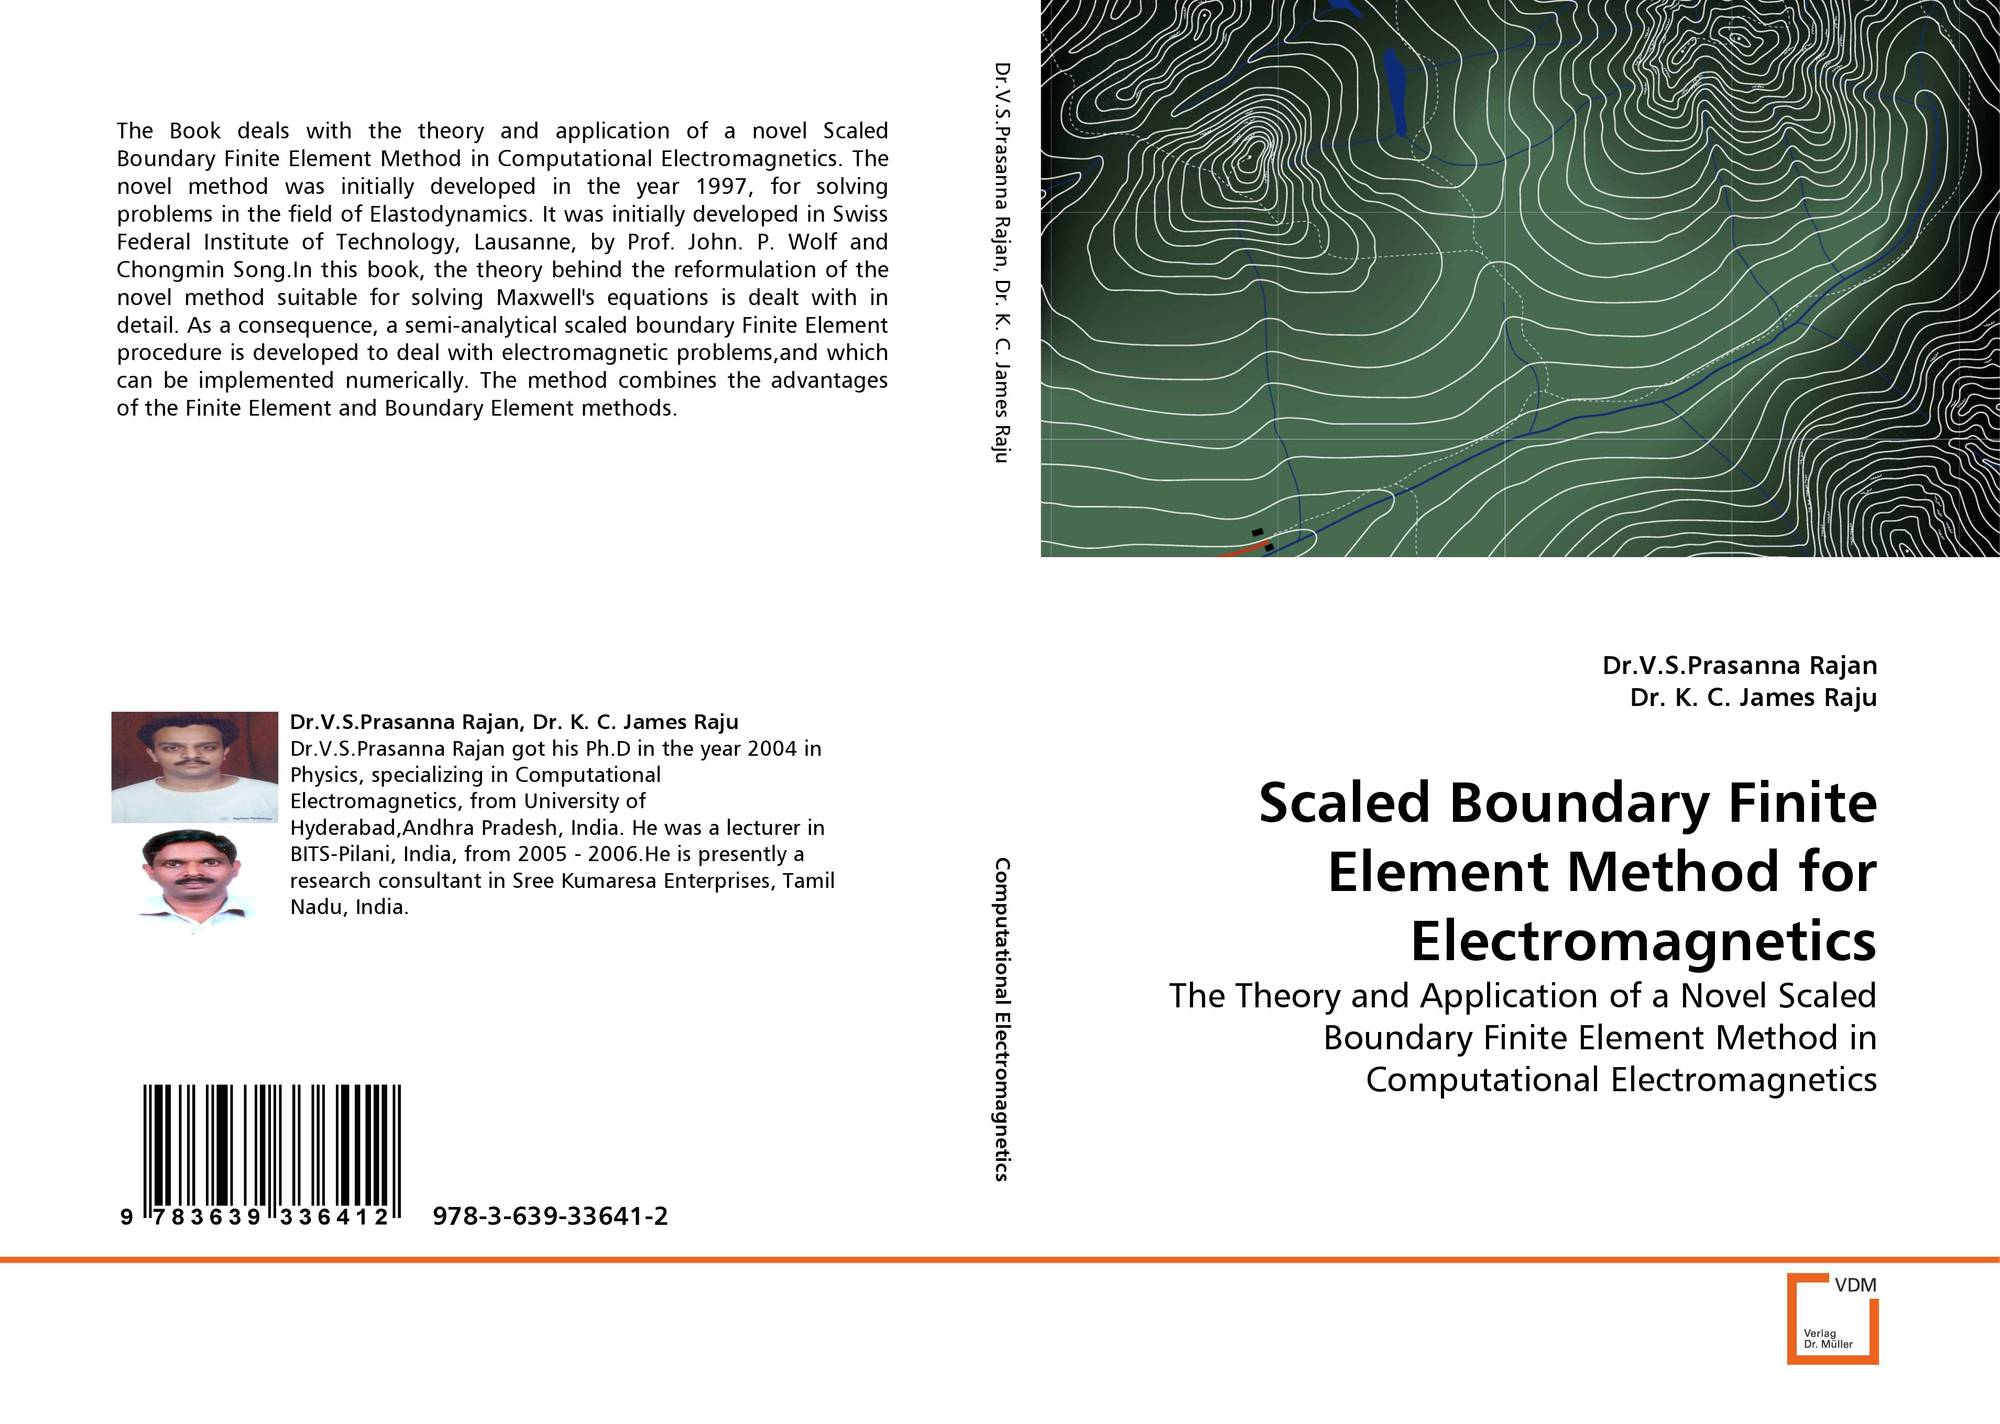 Bookcover of scaled boundary finite element method for electromagnetics